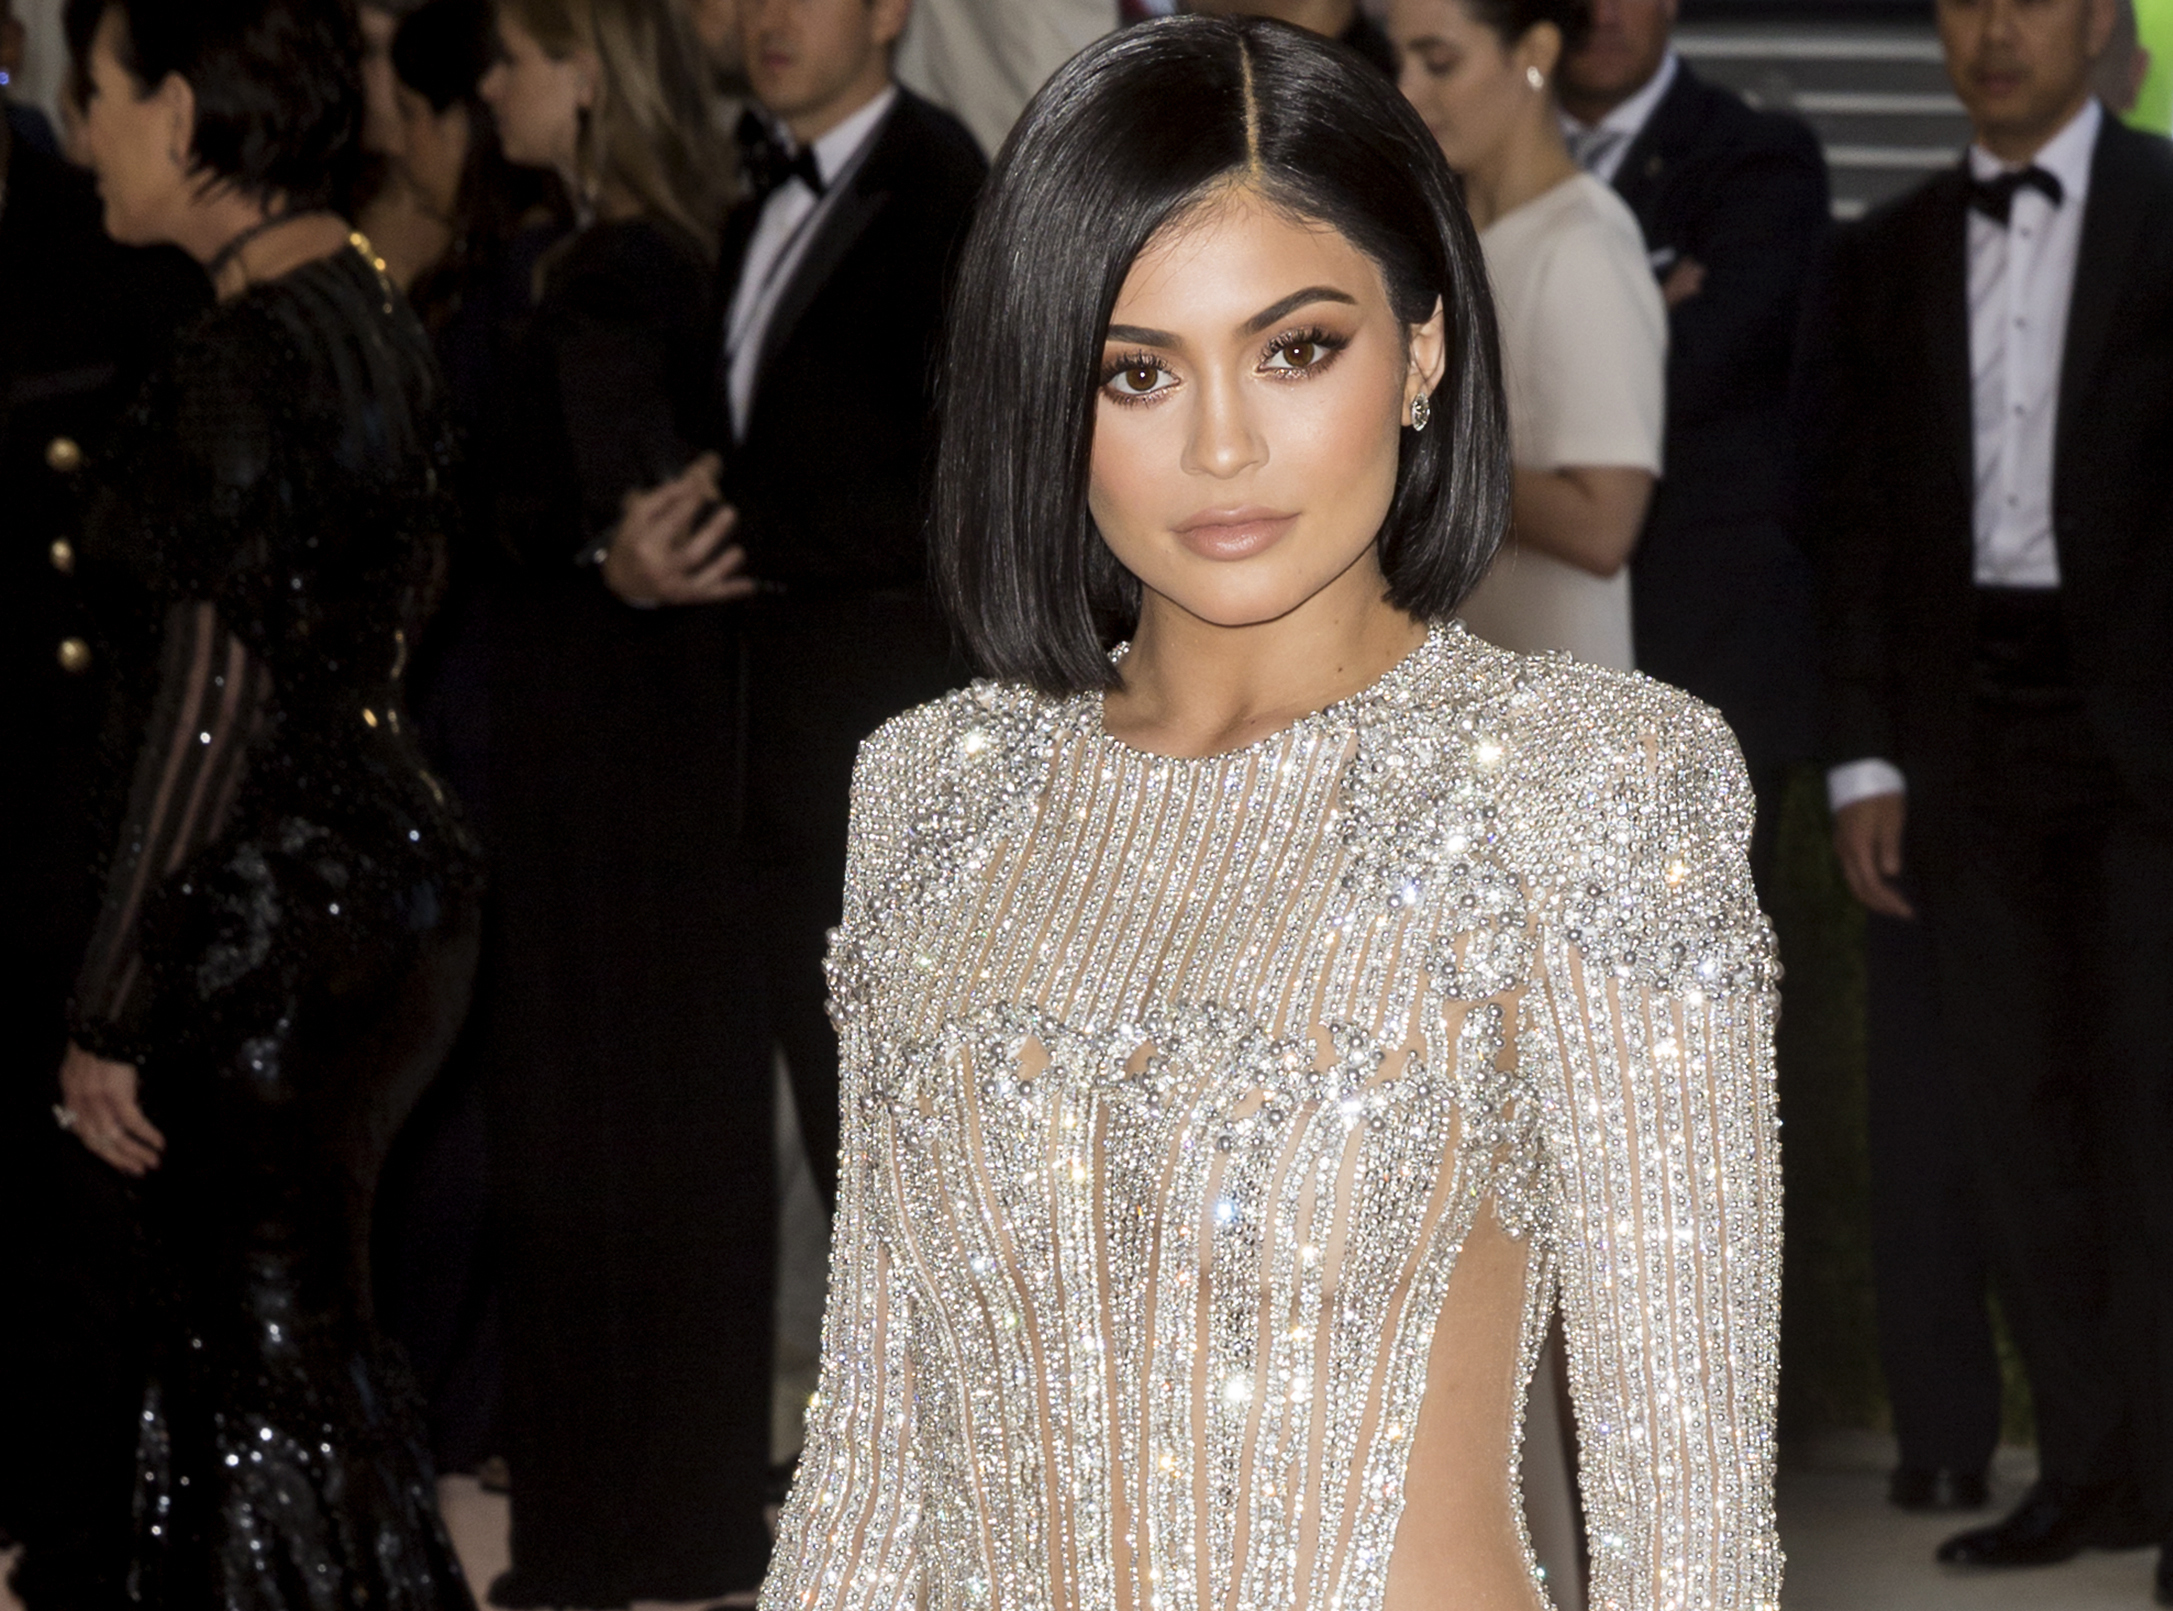 Kylie Jenner doesn't want to be famous forever, and we totally get that